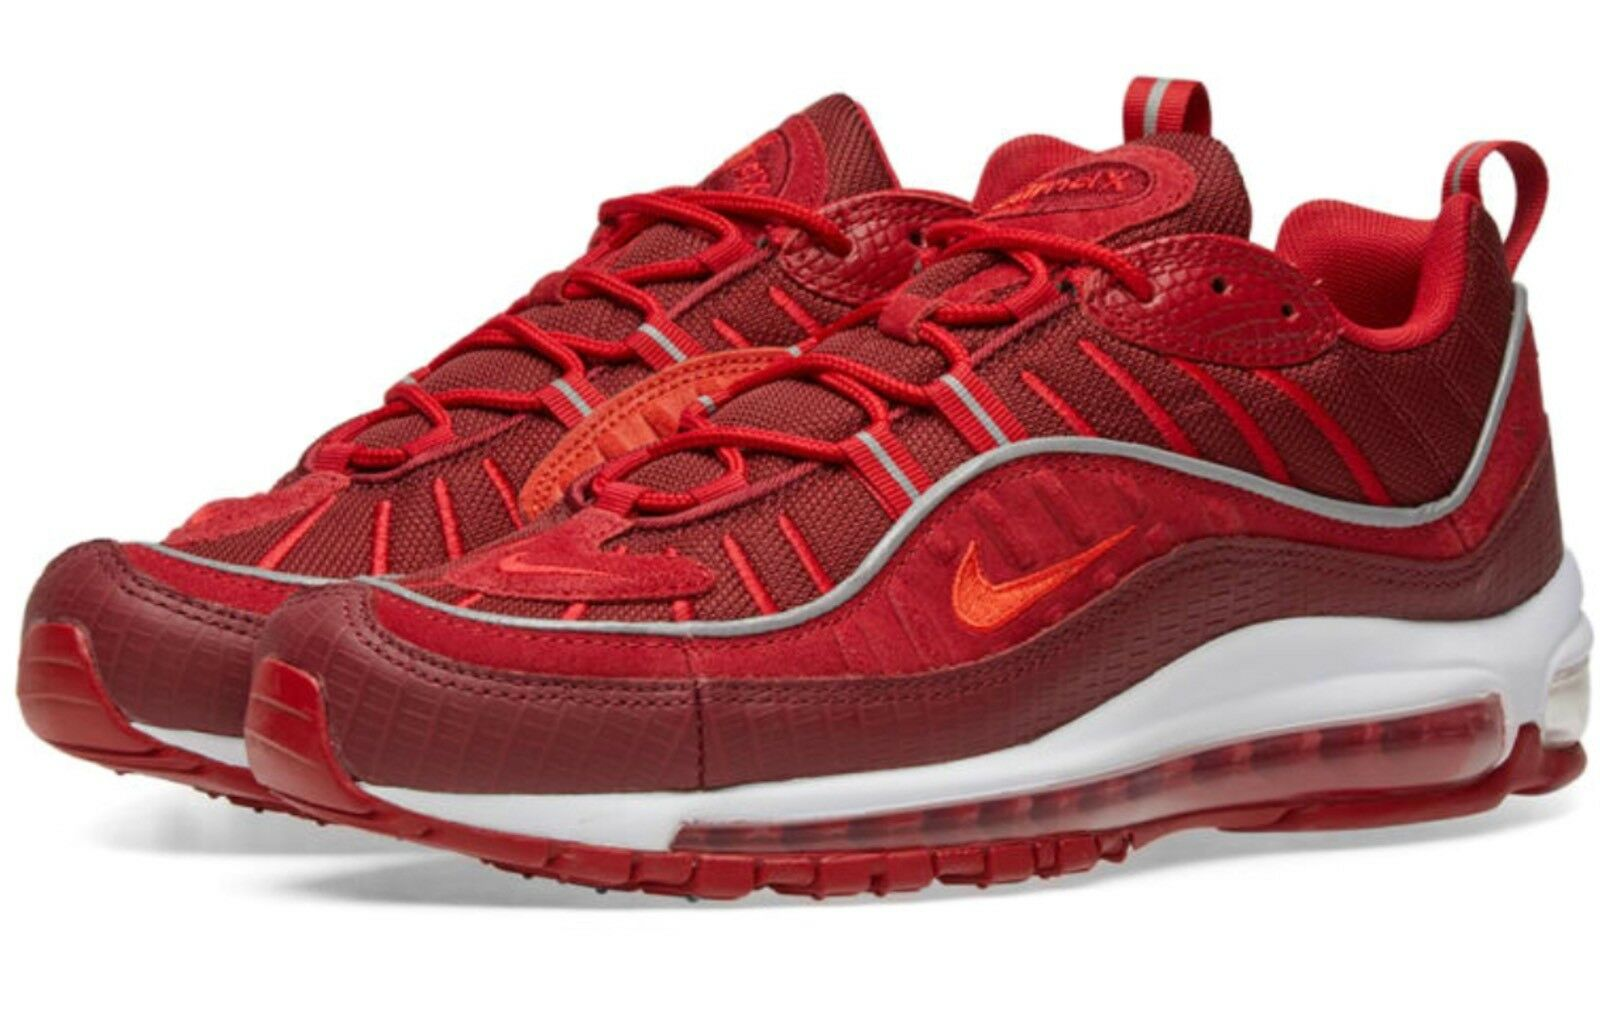 DS Uomo NIKE AIR MAX 98 SE TRIPLE RED RUNNING SHOES AO9380 600 SZ 9.5 FREE